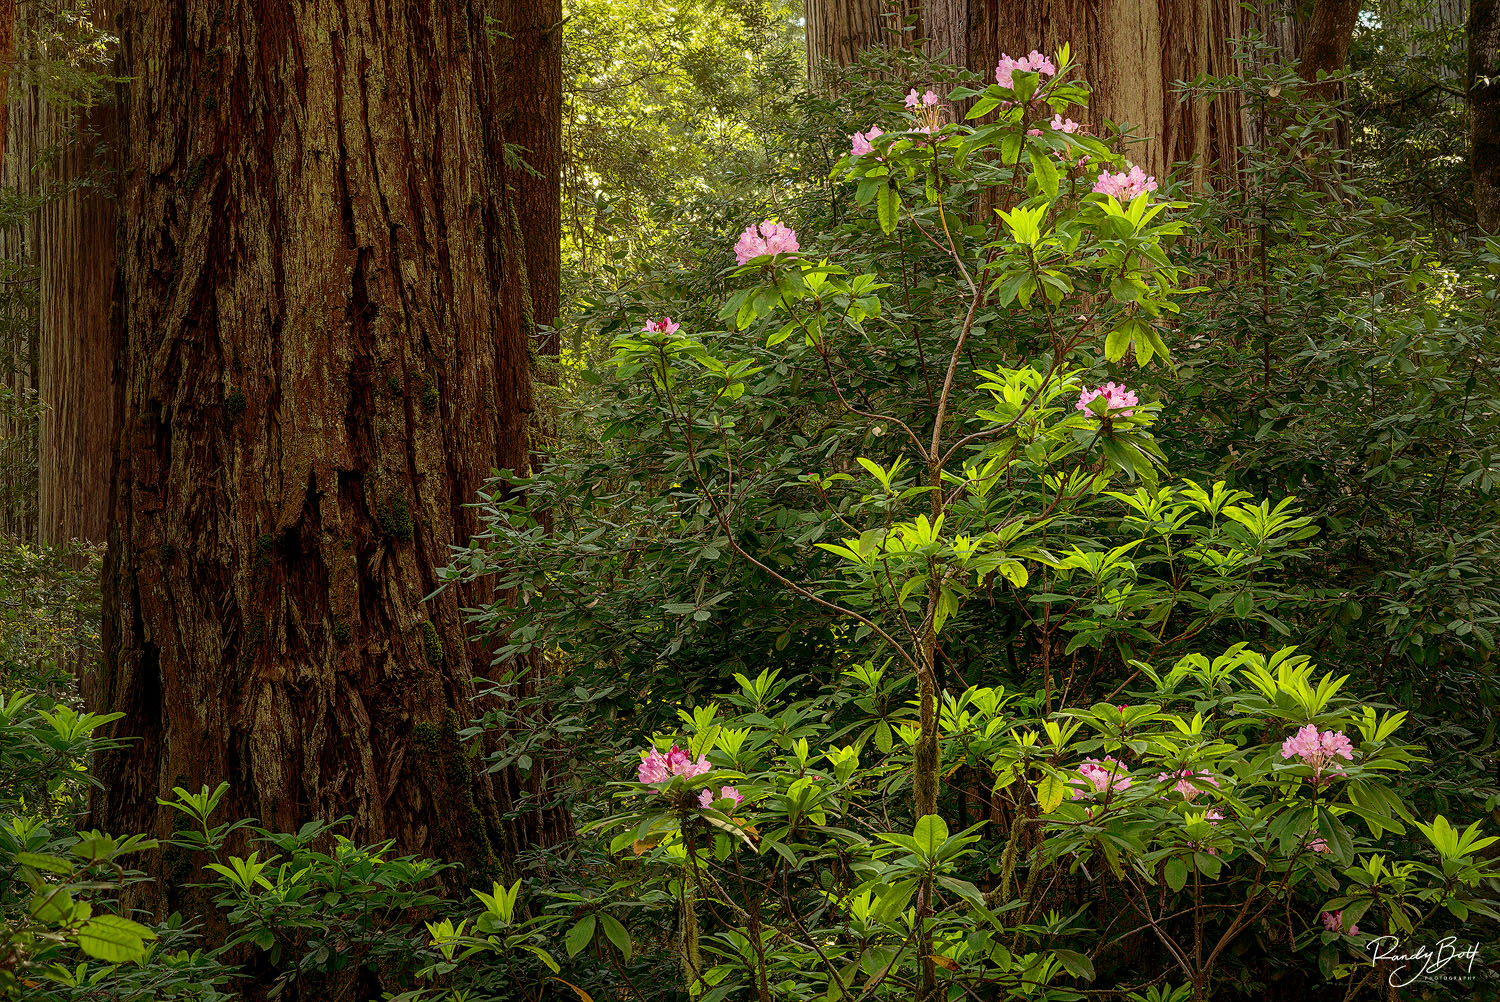 redwood trees and rhododendron flowers blooming in Jedediah Smith redwood grove.